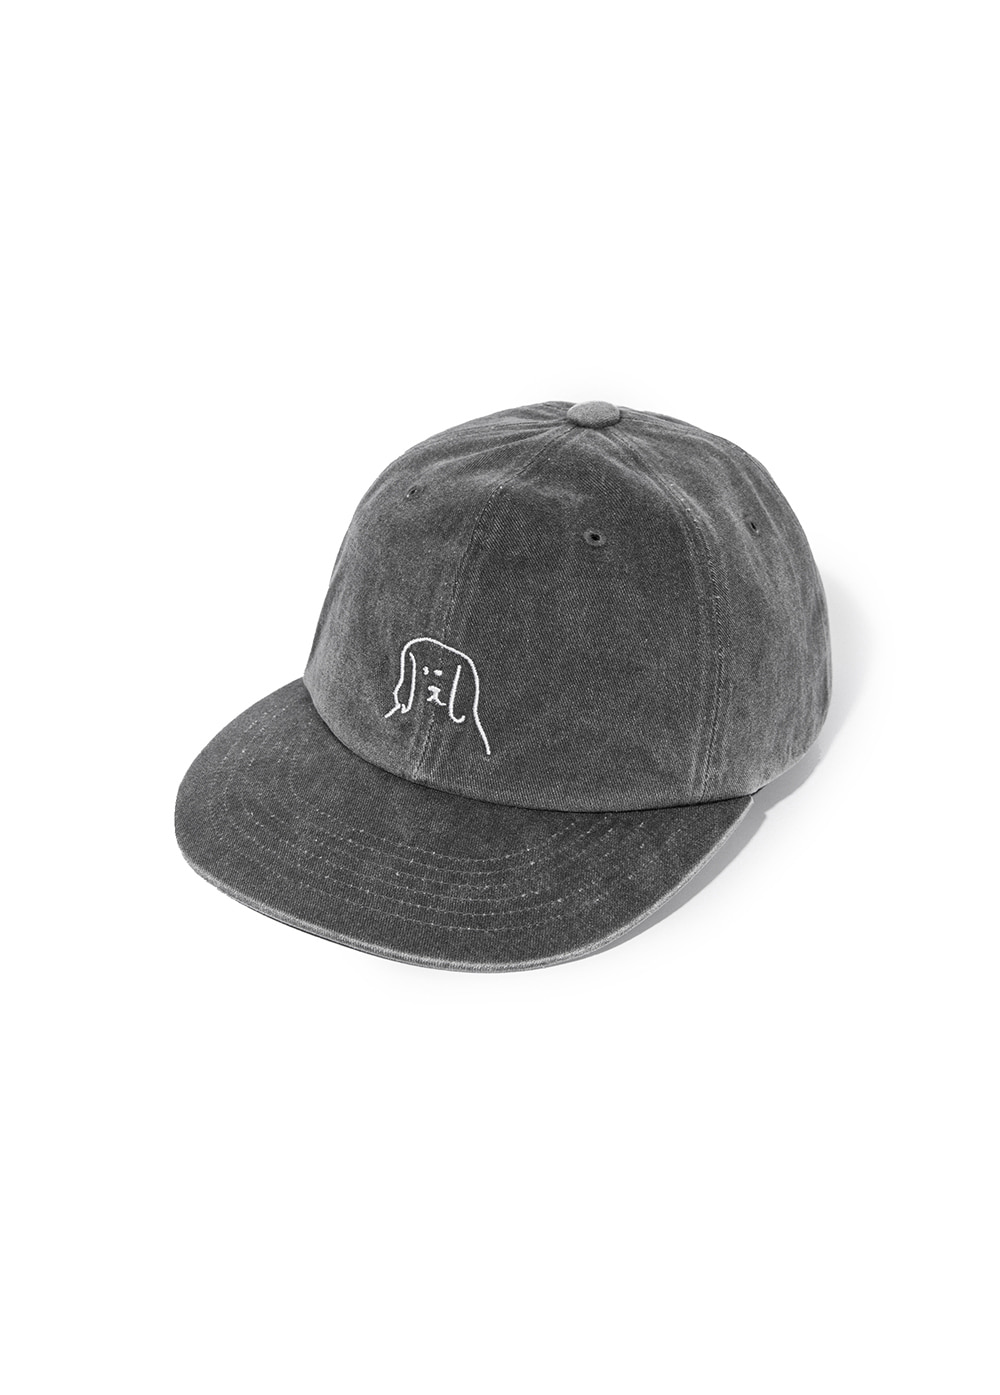 LIFUL x PUPPY RADIO PUPPY DYED CAP black